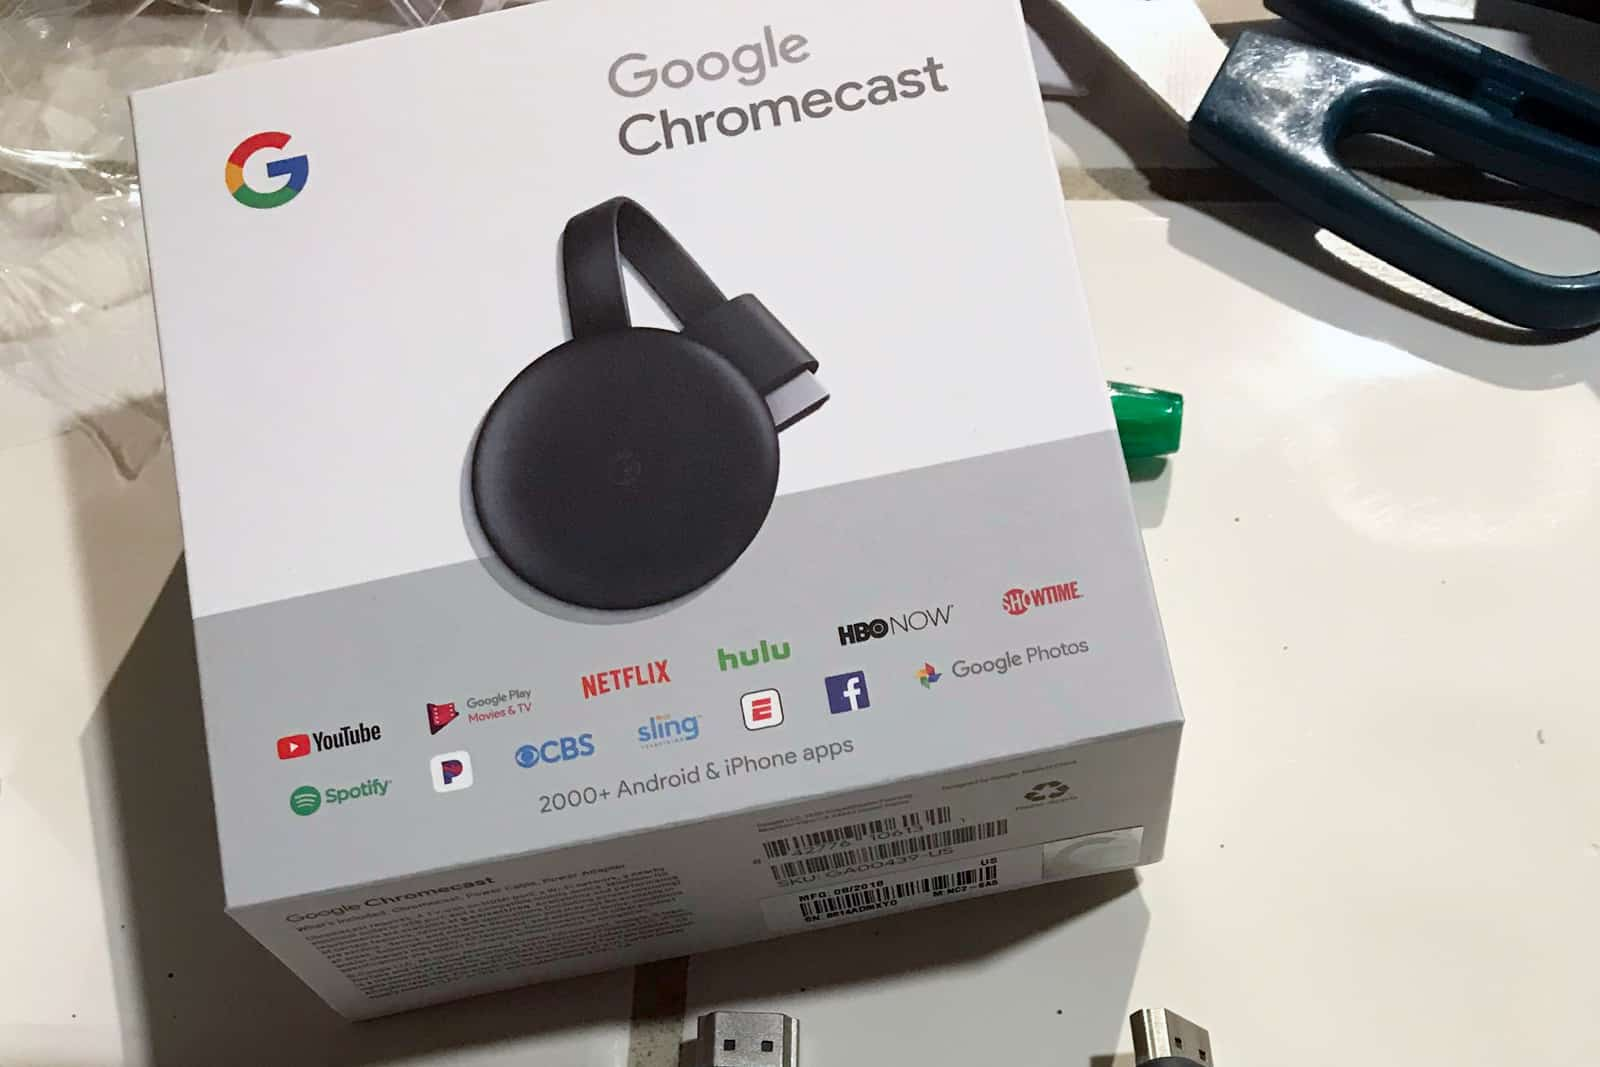 Best Buy Accidentally Sold Google's Yet Unreleased Chromecast